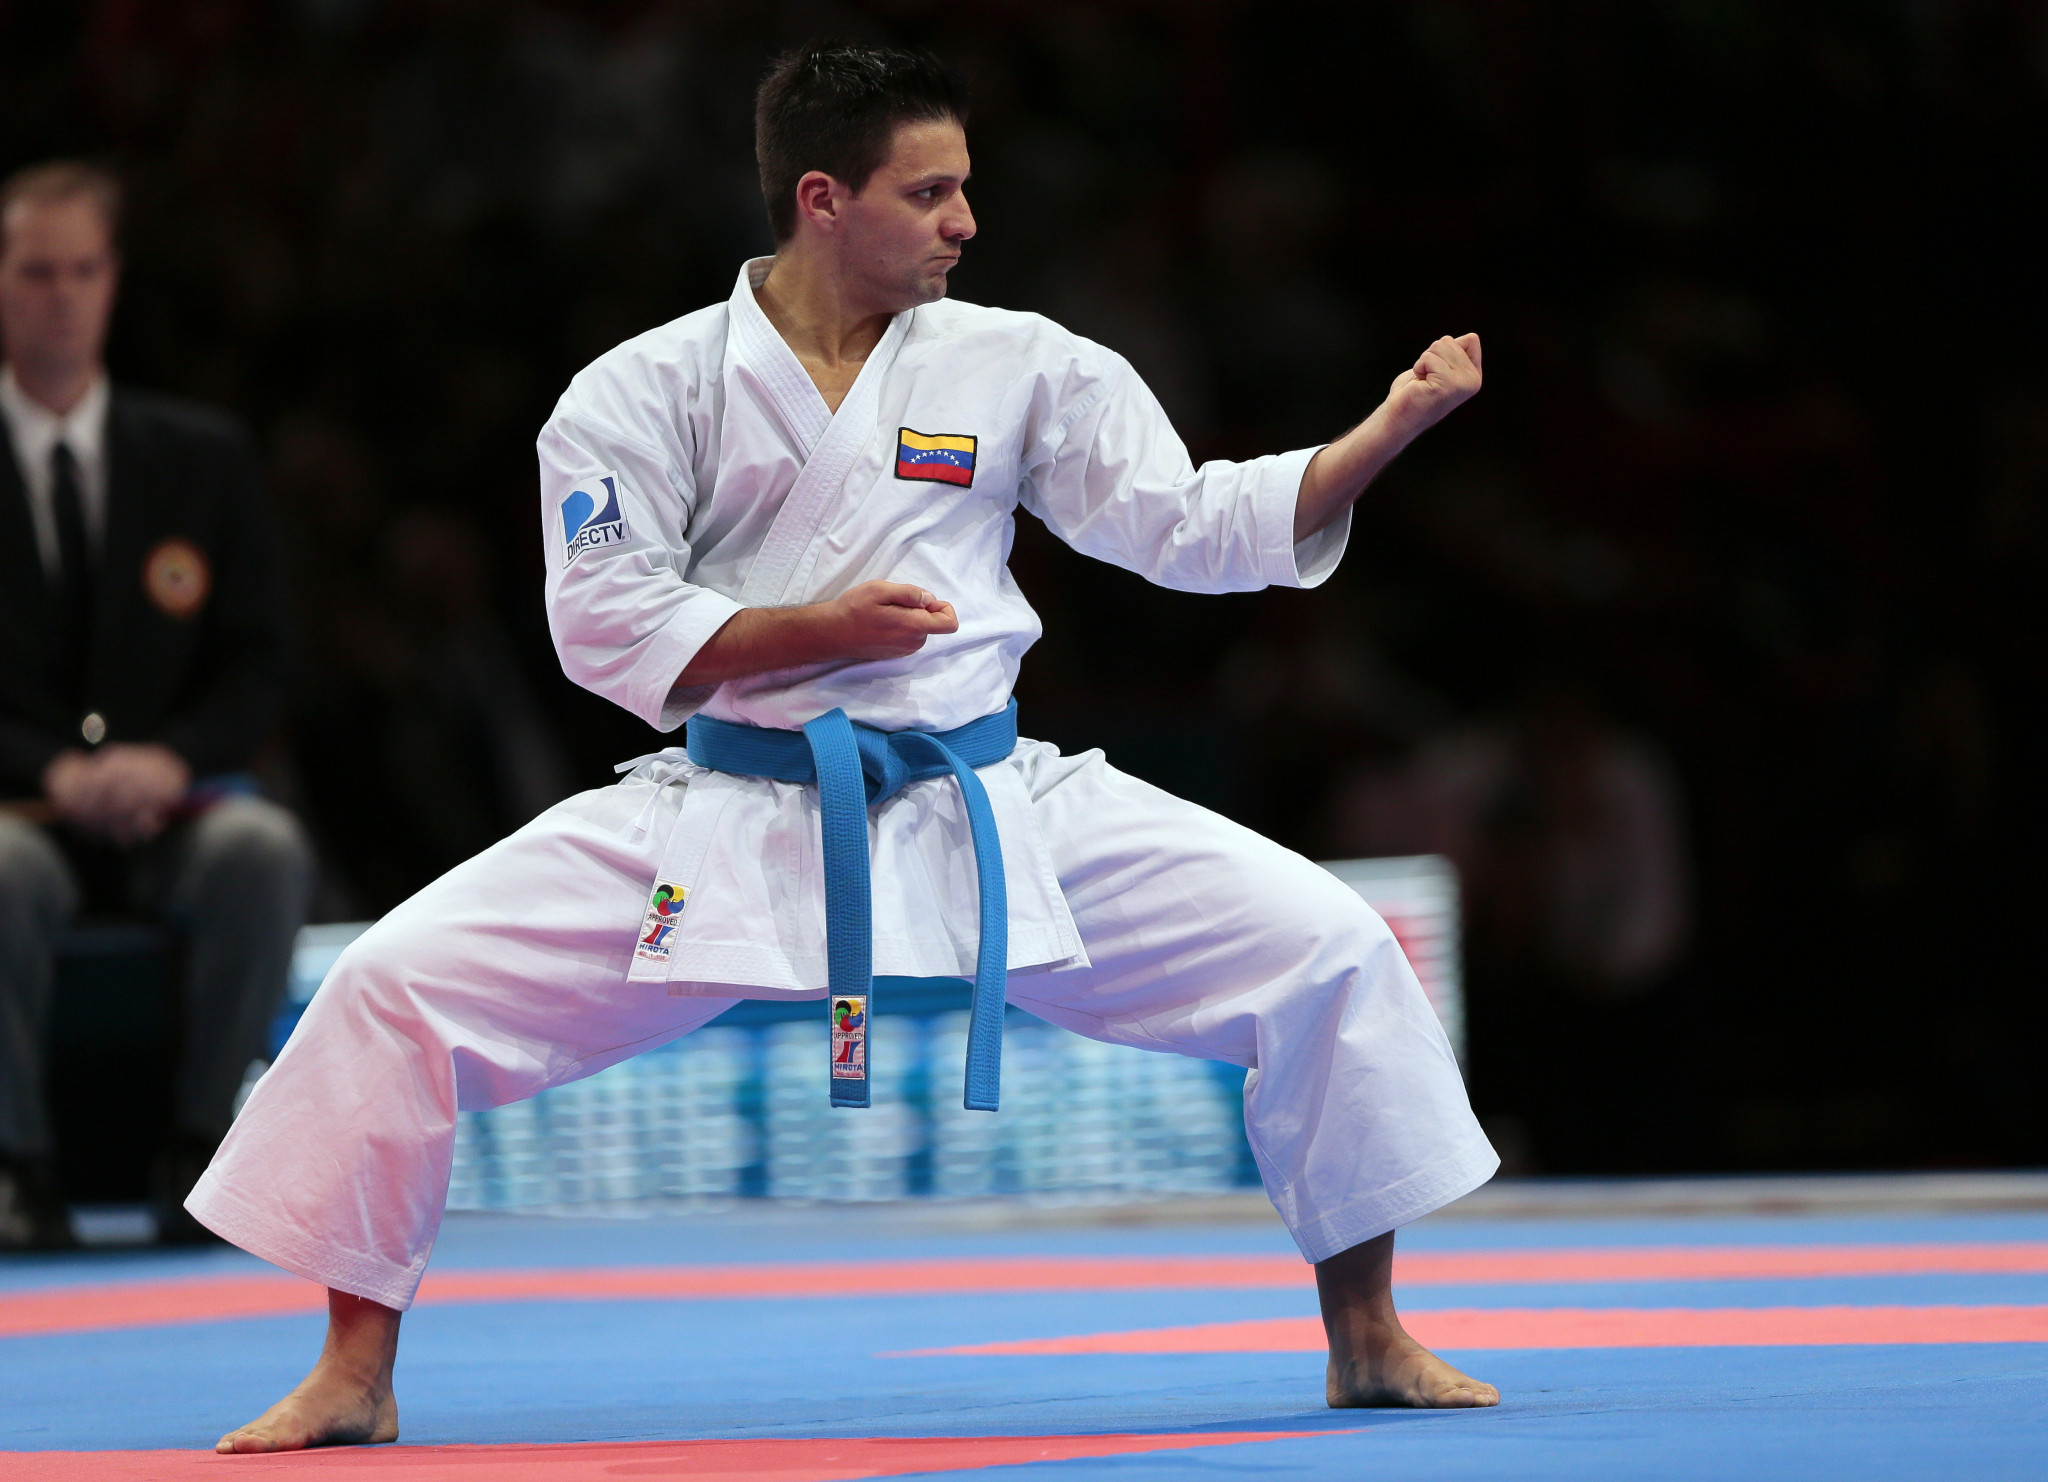 Venezuela's Antonio Diaz will go for his 17th gold at the Pan American Karate Championships ©Getty Images